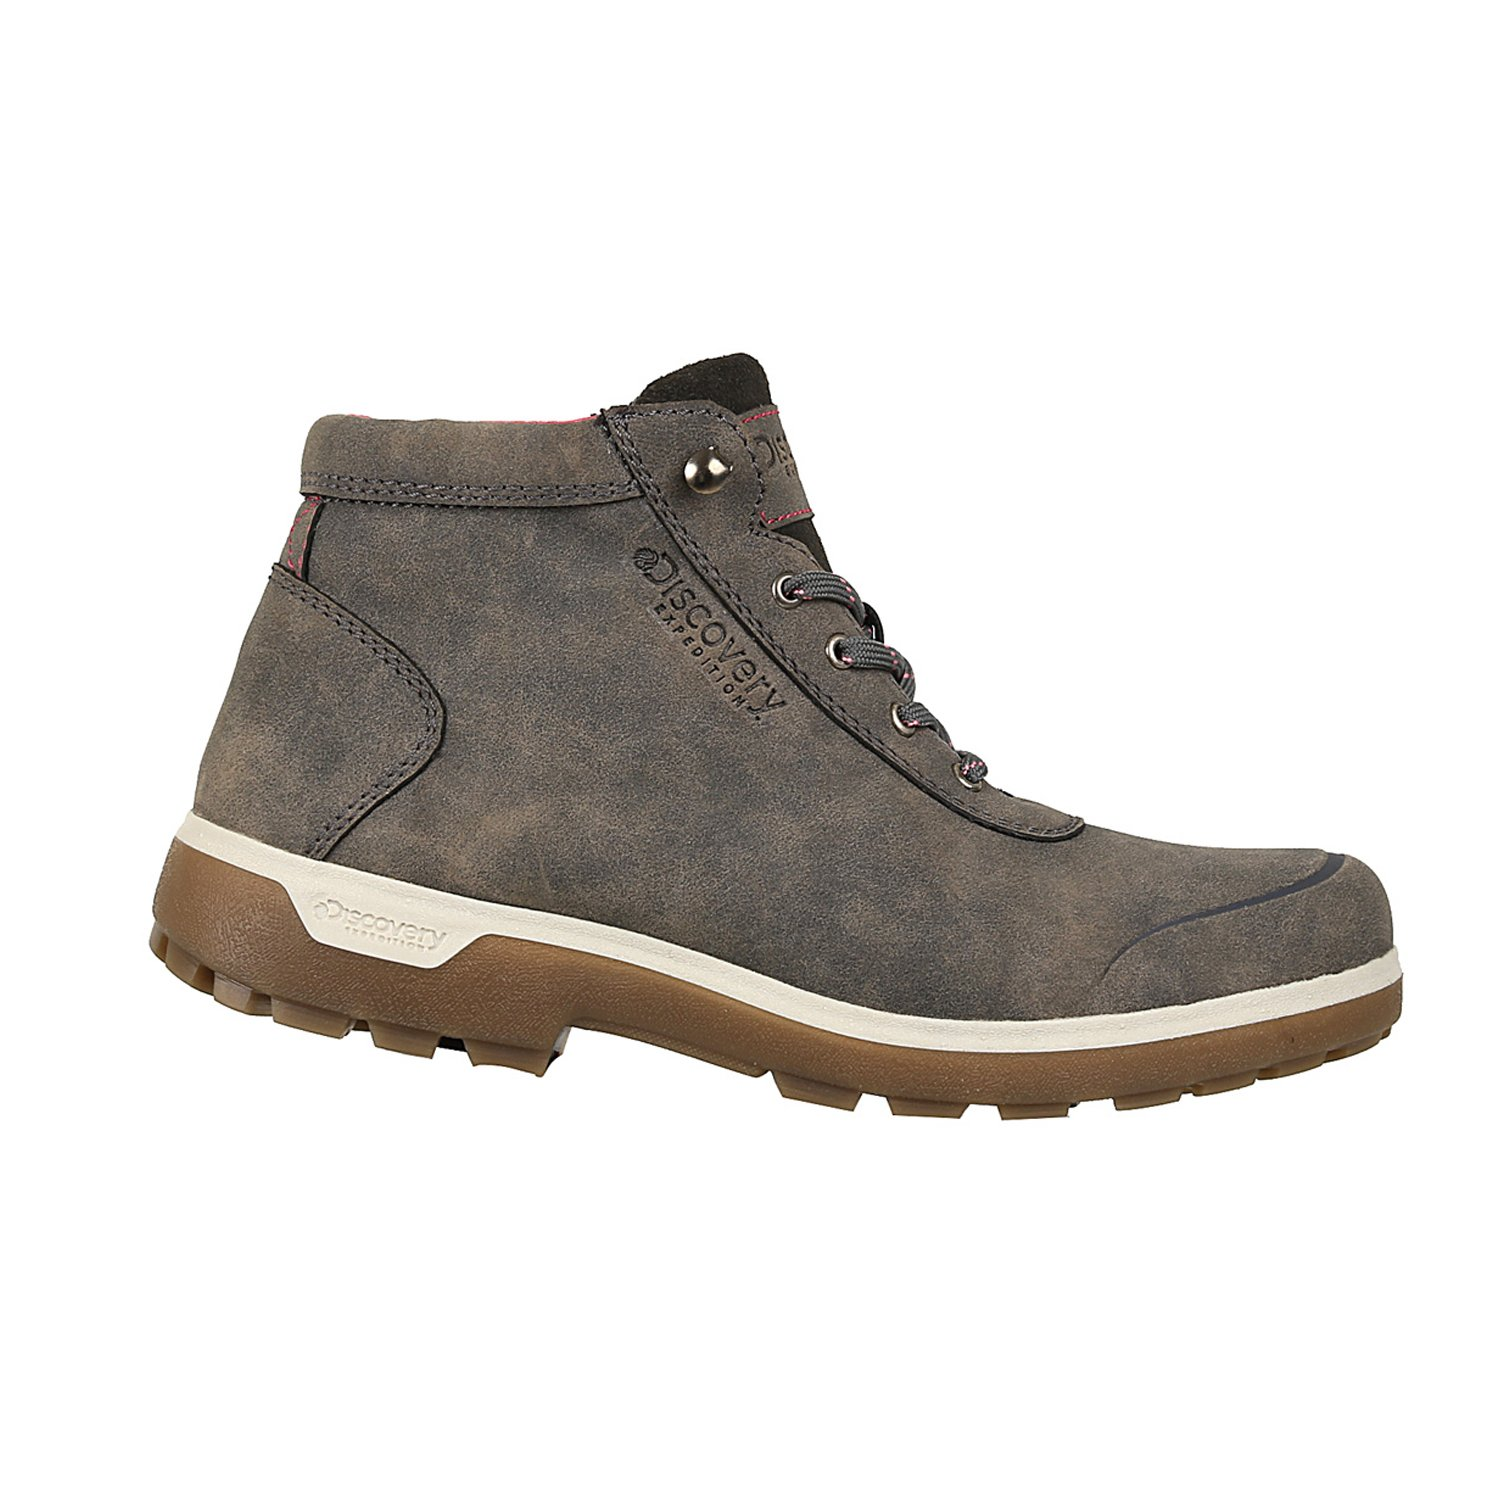 Discovery Expedition Womens Adventure Mid Hiking Boot Gun Metal Size 7